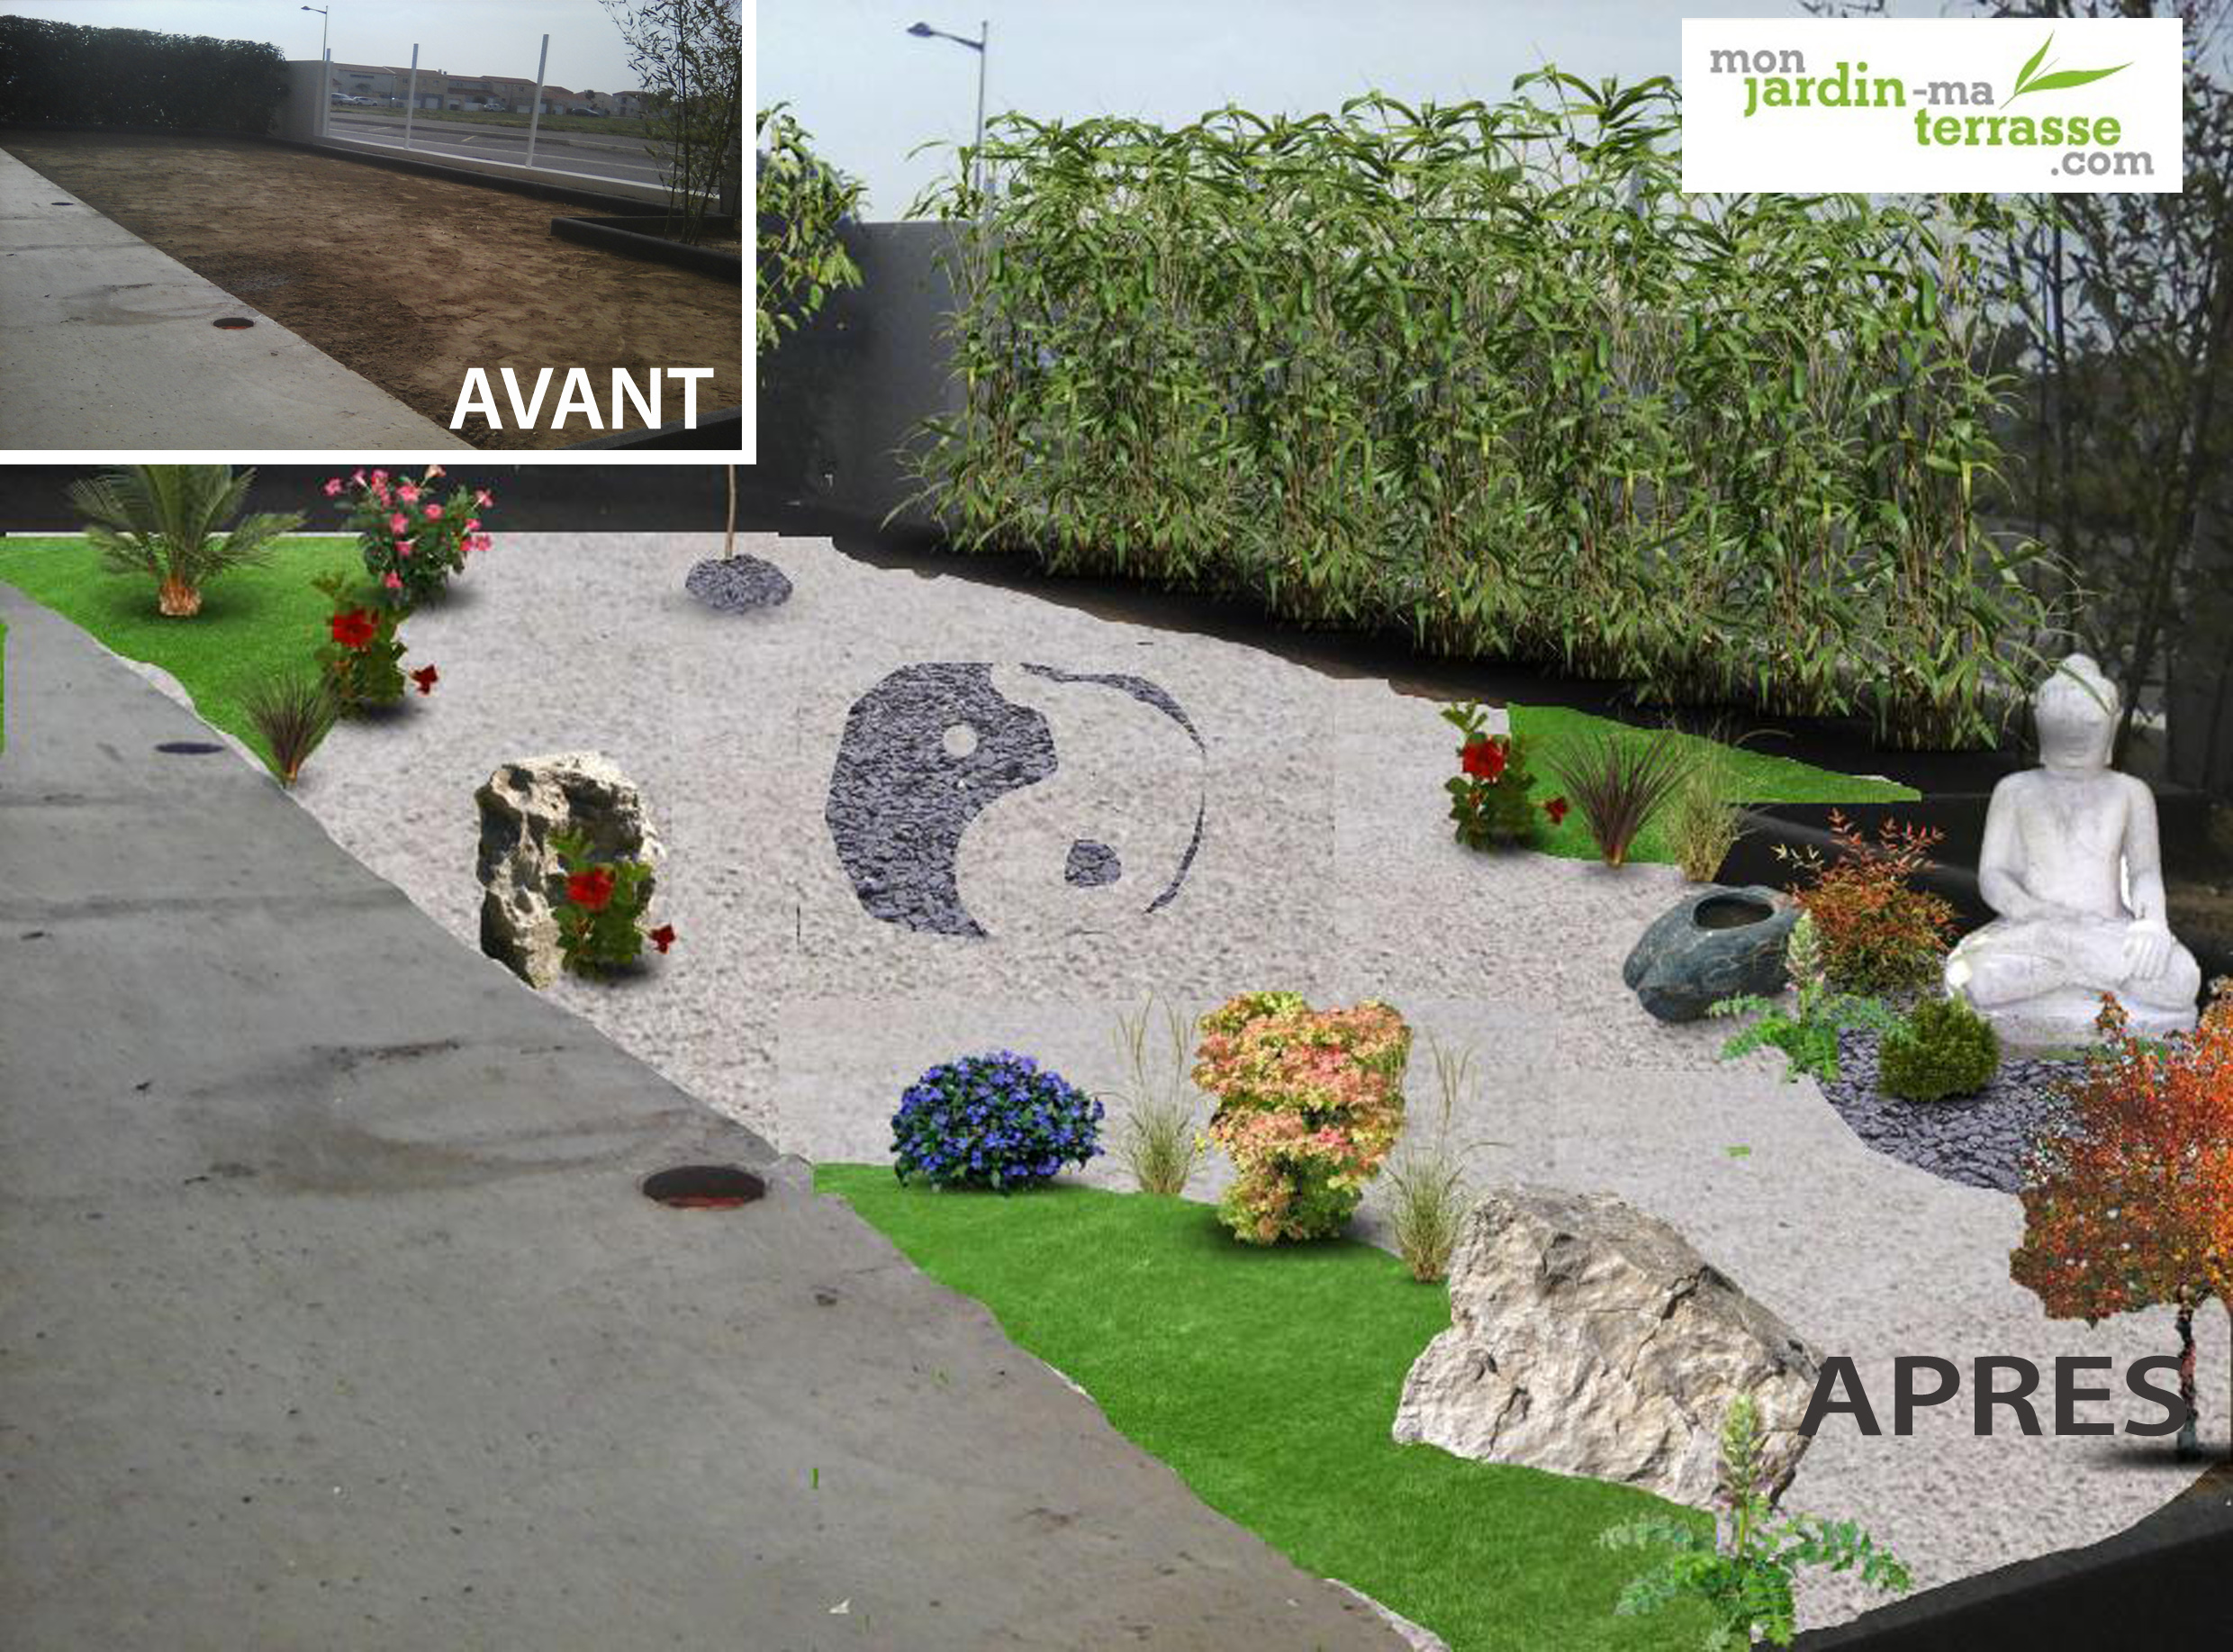 Avant apr s my garden designer for Idee amenagement de jardin exterieur